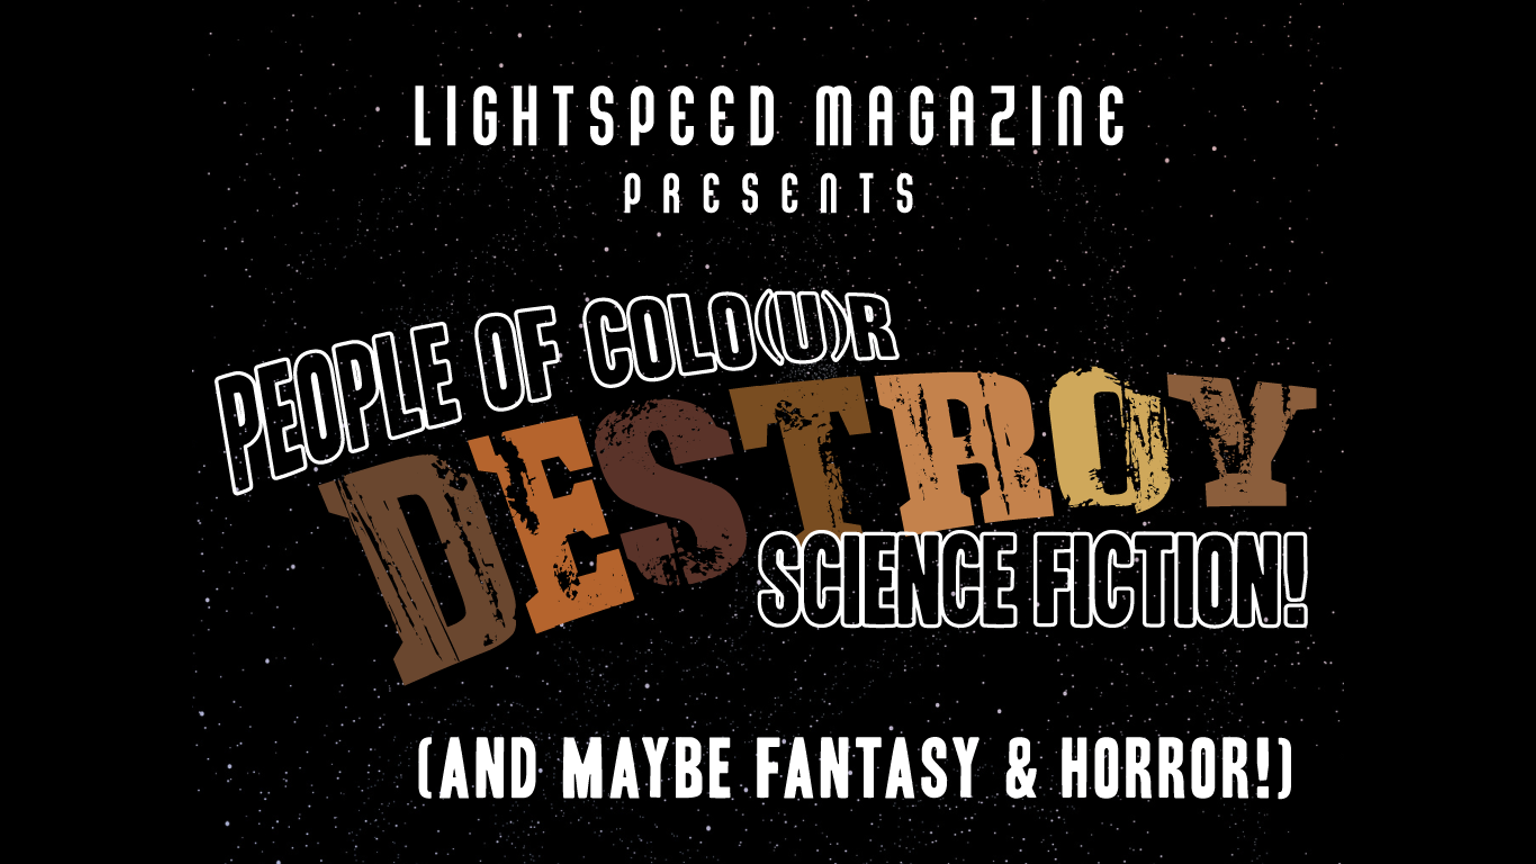 science fiction essay women destroy science fiction by lightspeed people of colo u r destroy science fiction by lightspeed magazine people of colo u r destroy science